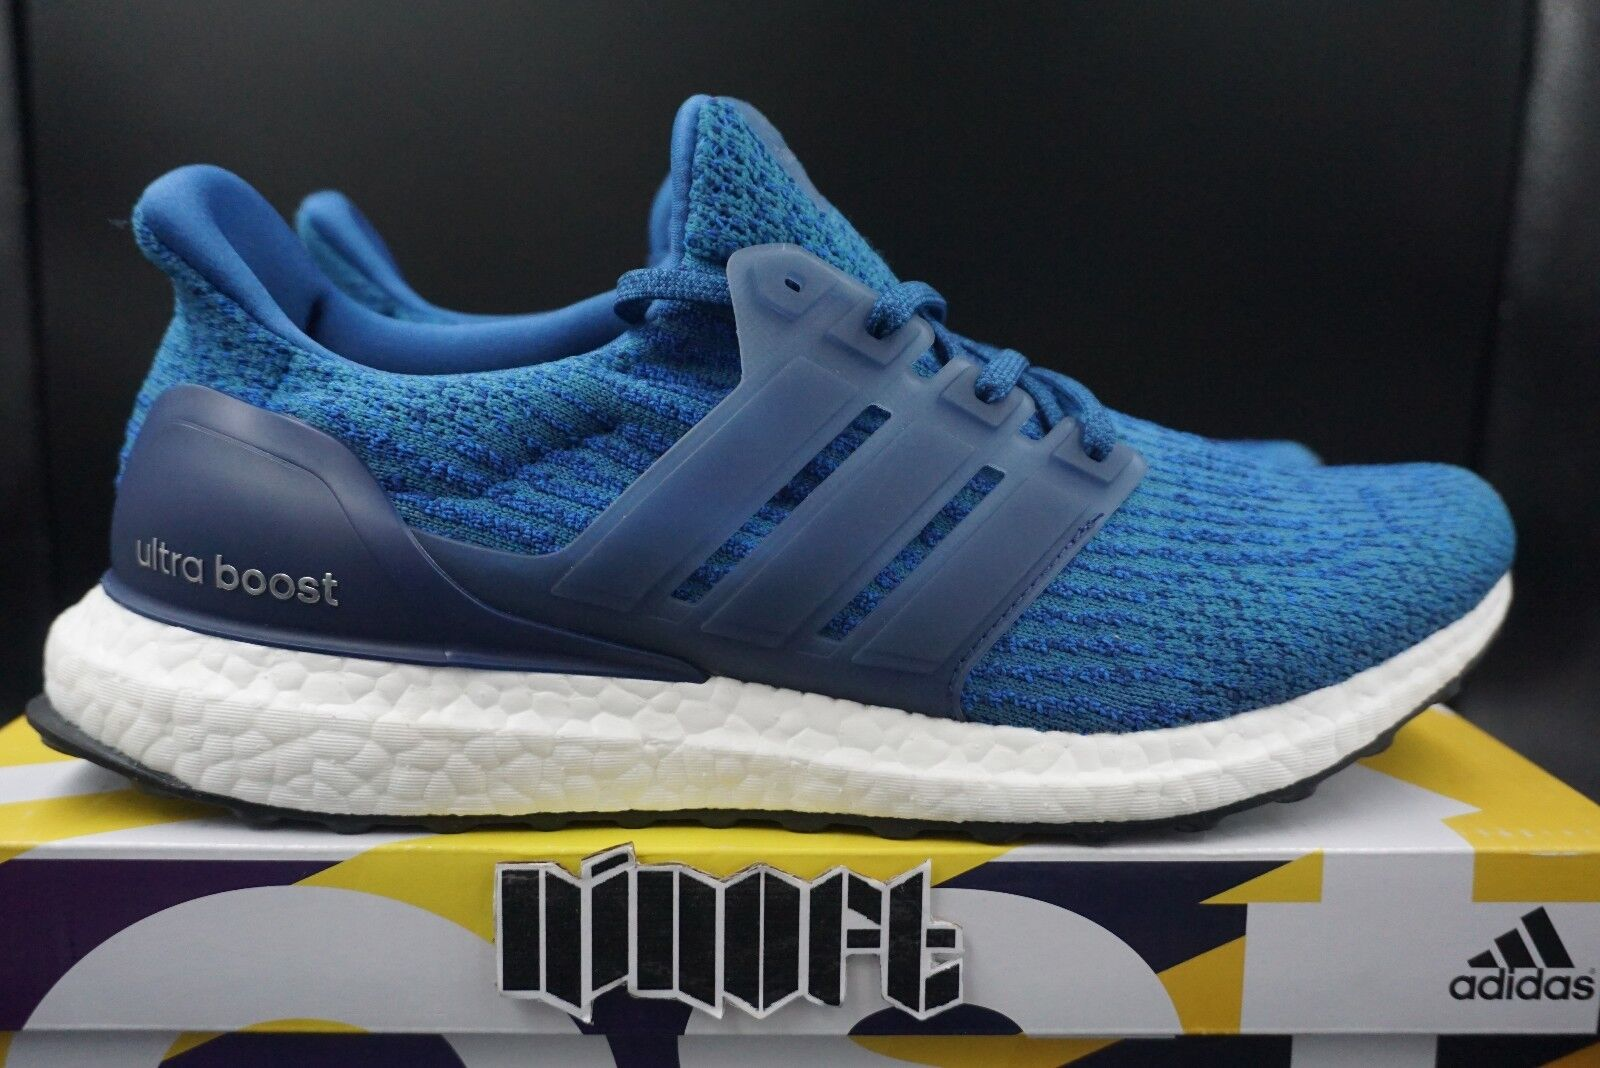 watch fb0e6 57bc9 Adidas Ultra Boost 3.0 Royal Mystery Bleu BA8844 new in box